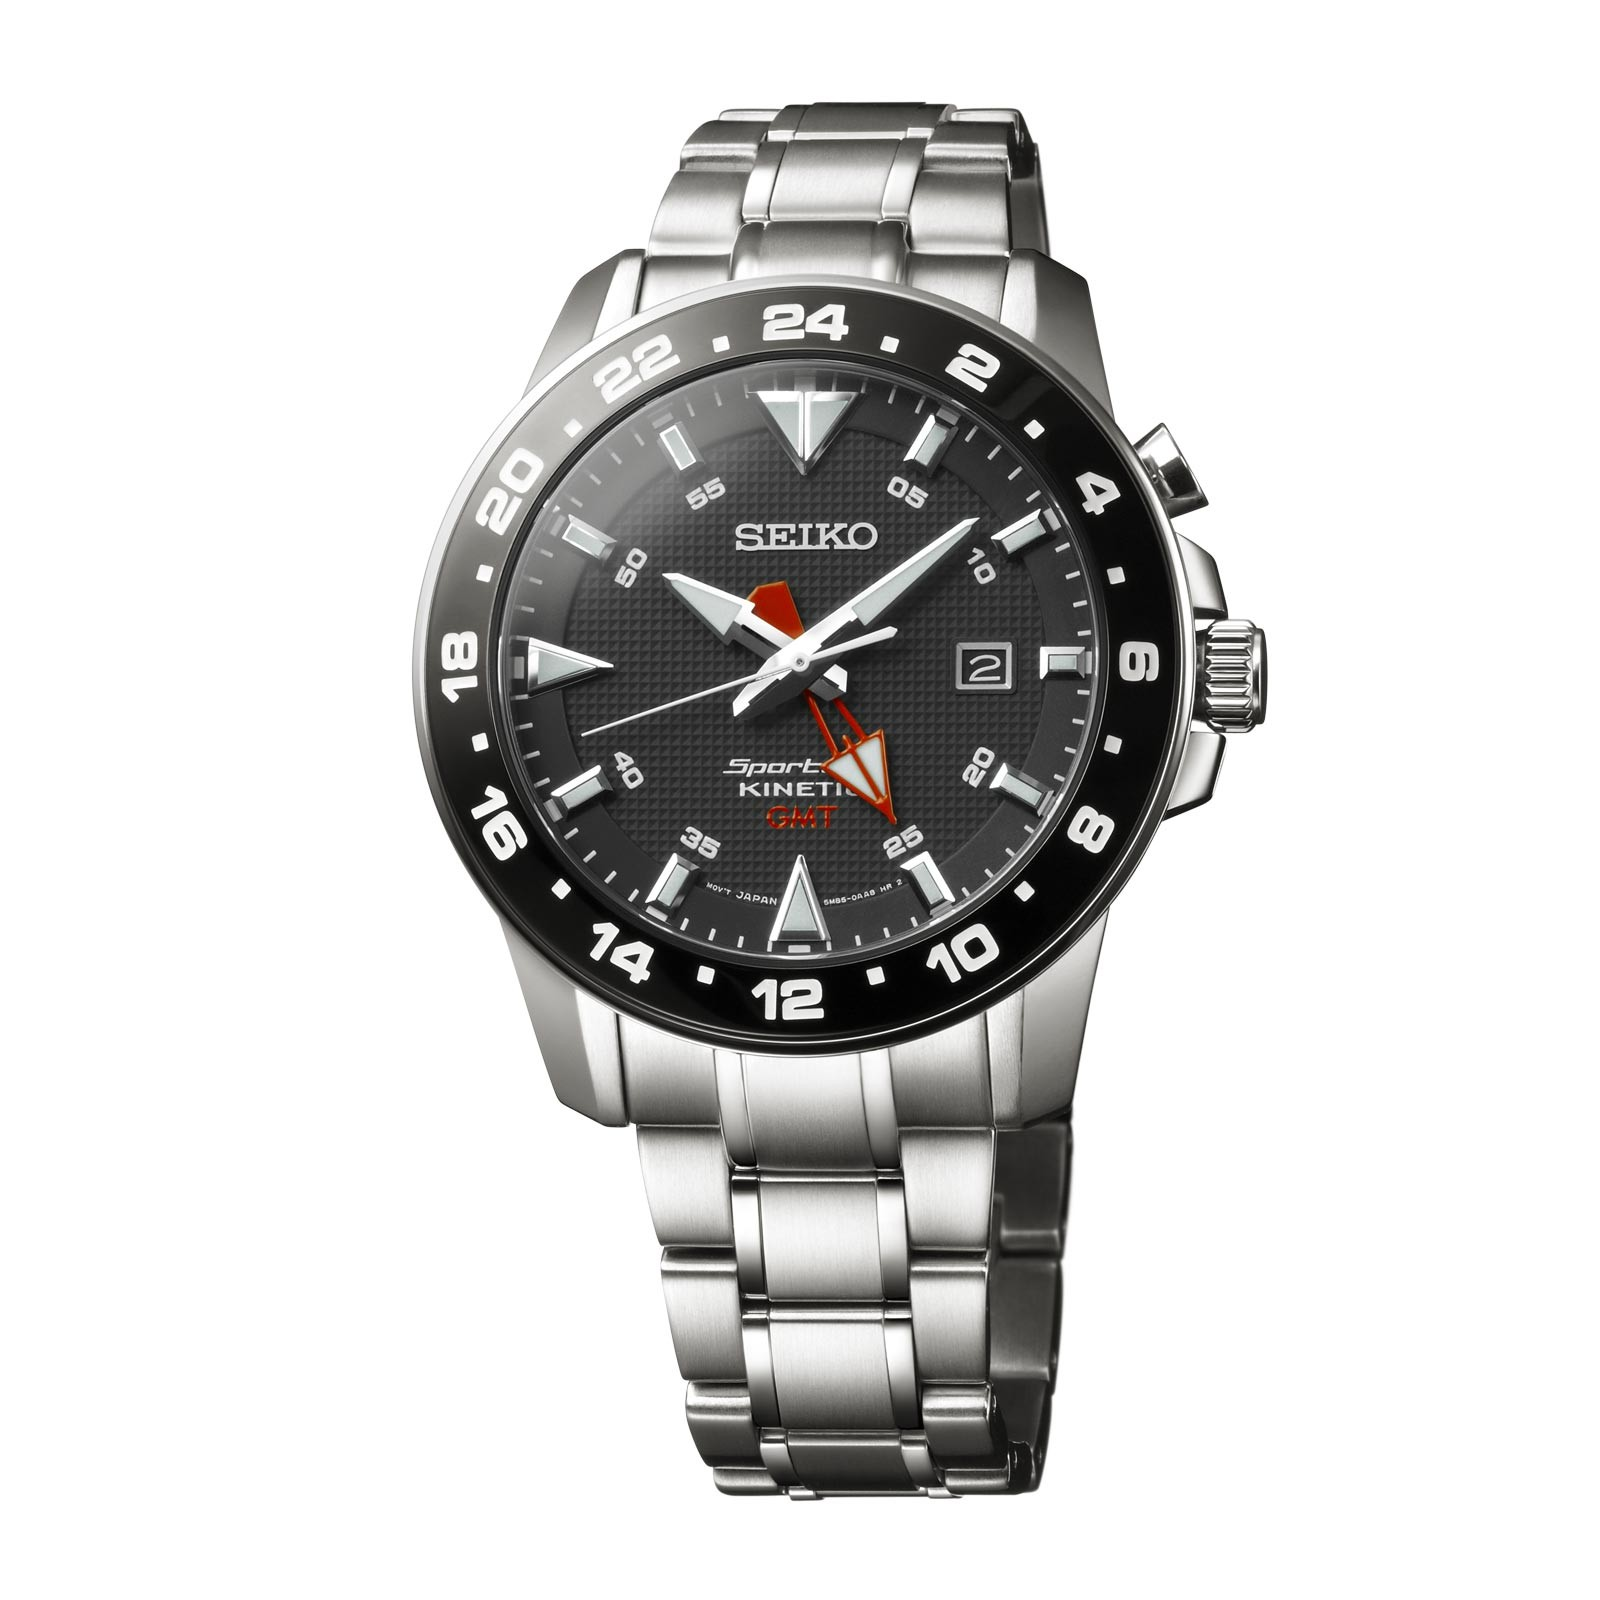 Seiko Men's Sportura Kinetic Stainless Steel Black Dial SUN015P1